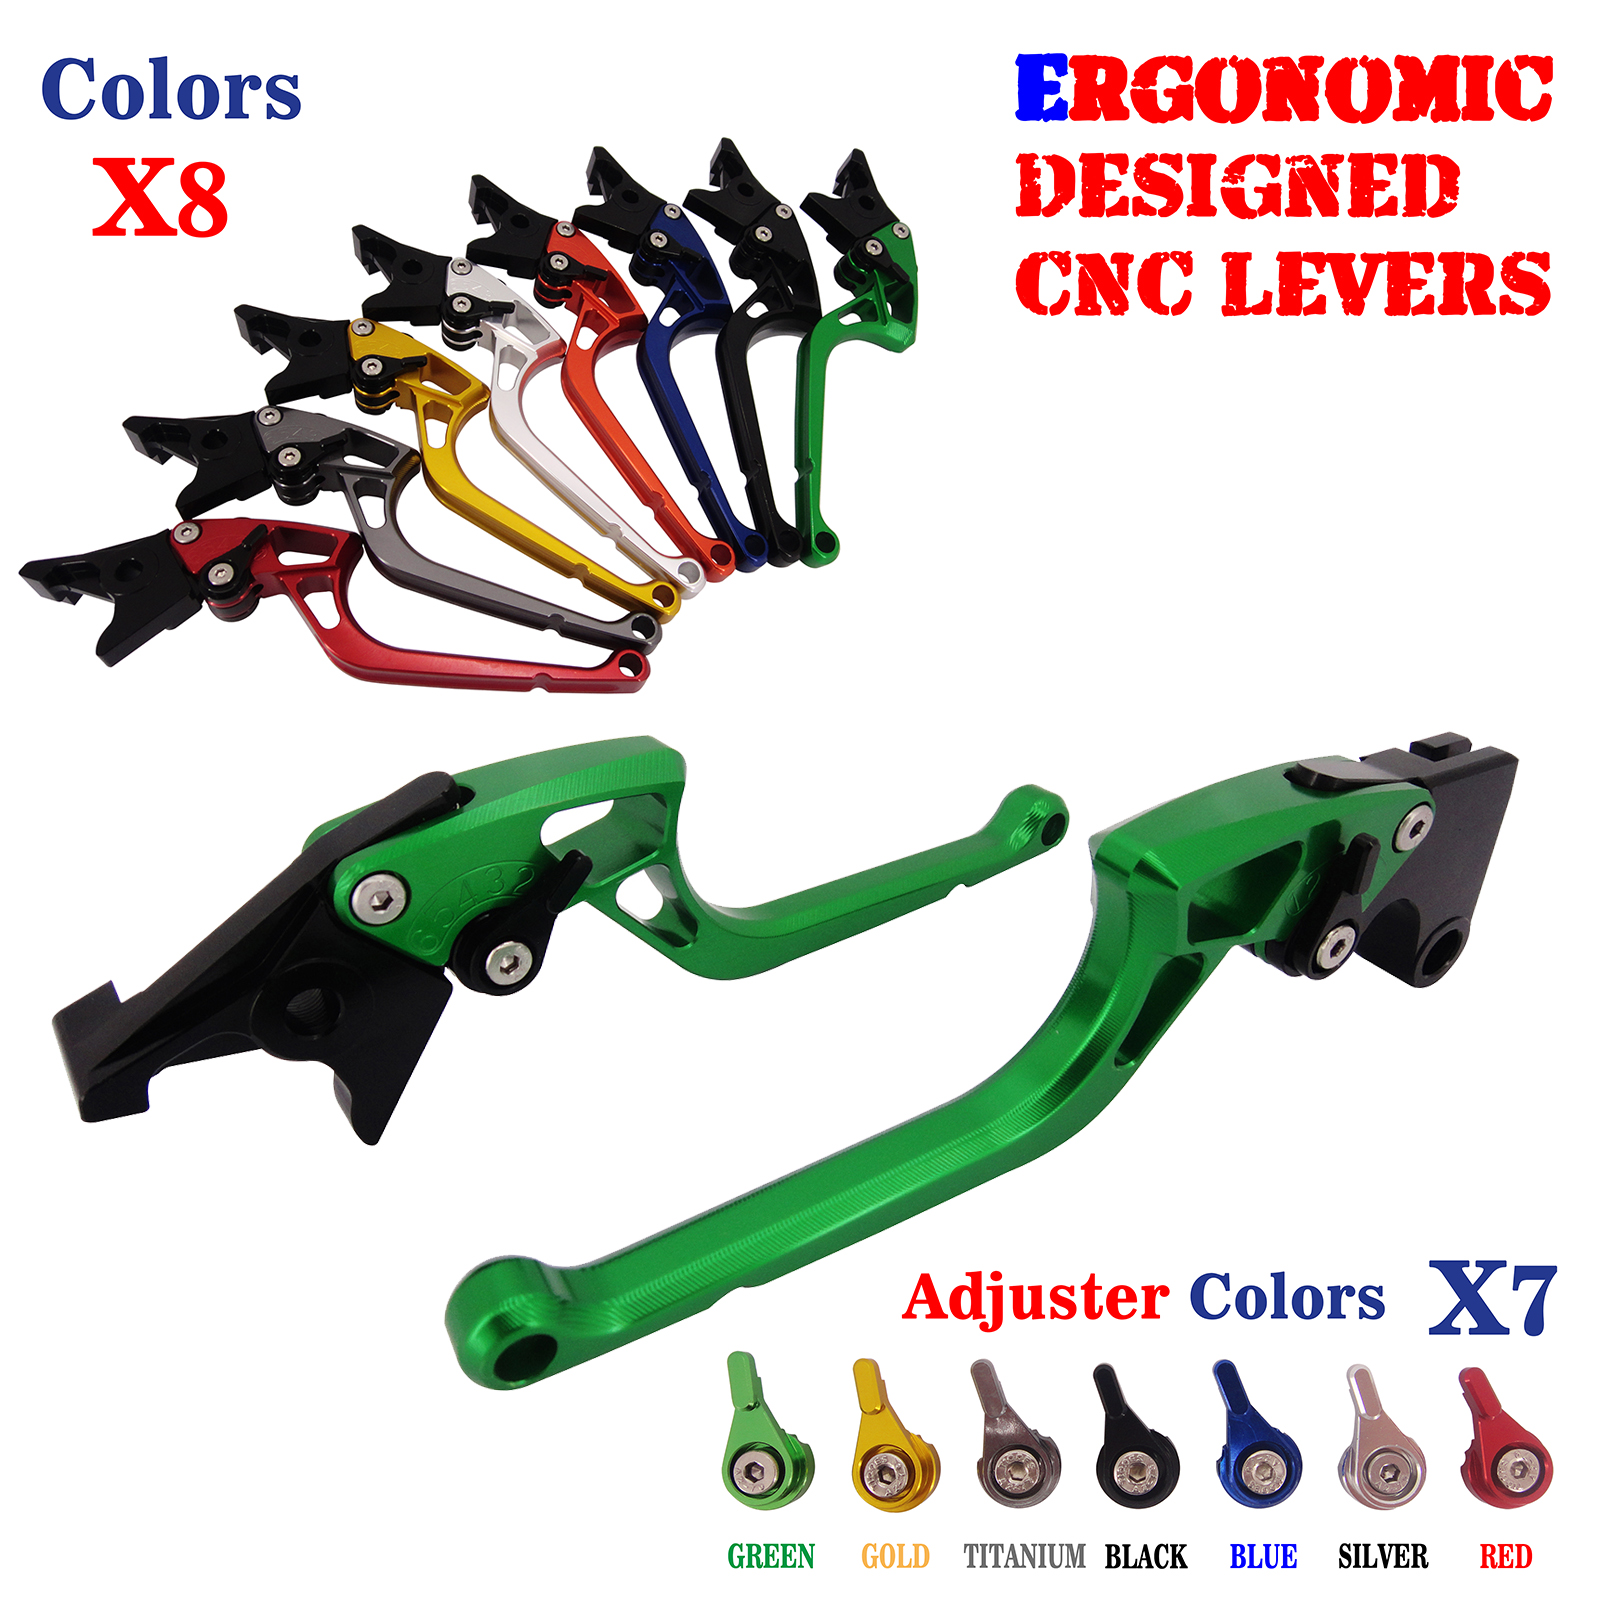 Ergonomic Adjustable Brake Clutch Levers For Aprilia Moto Guzzi Norge1200/GT8V 2006-2015 adjustable cnc aluminum clutch brake levers with regulators for moto guzzi breva 1100 2006 2012 1200 sport 07 08 09 10 11 12 13